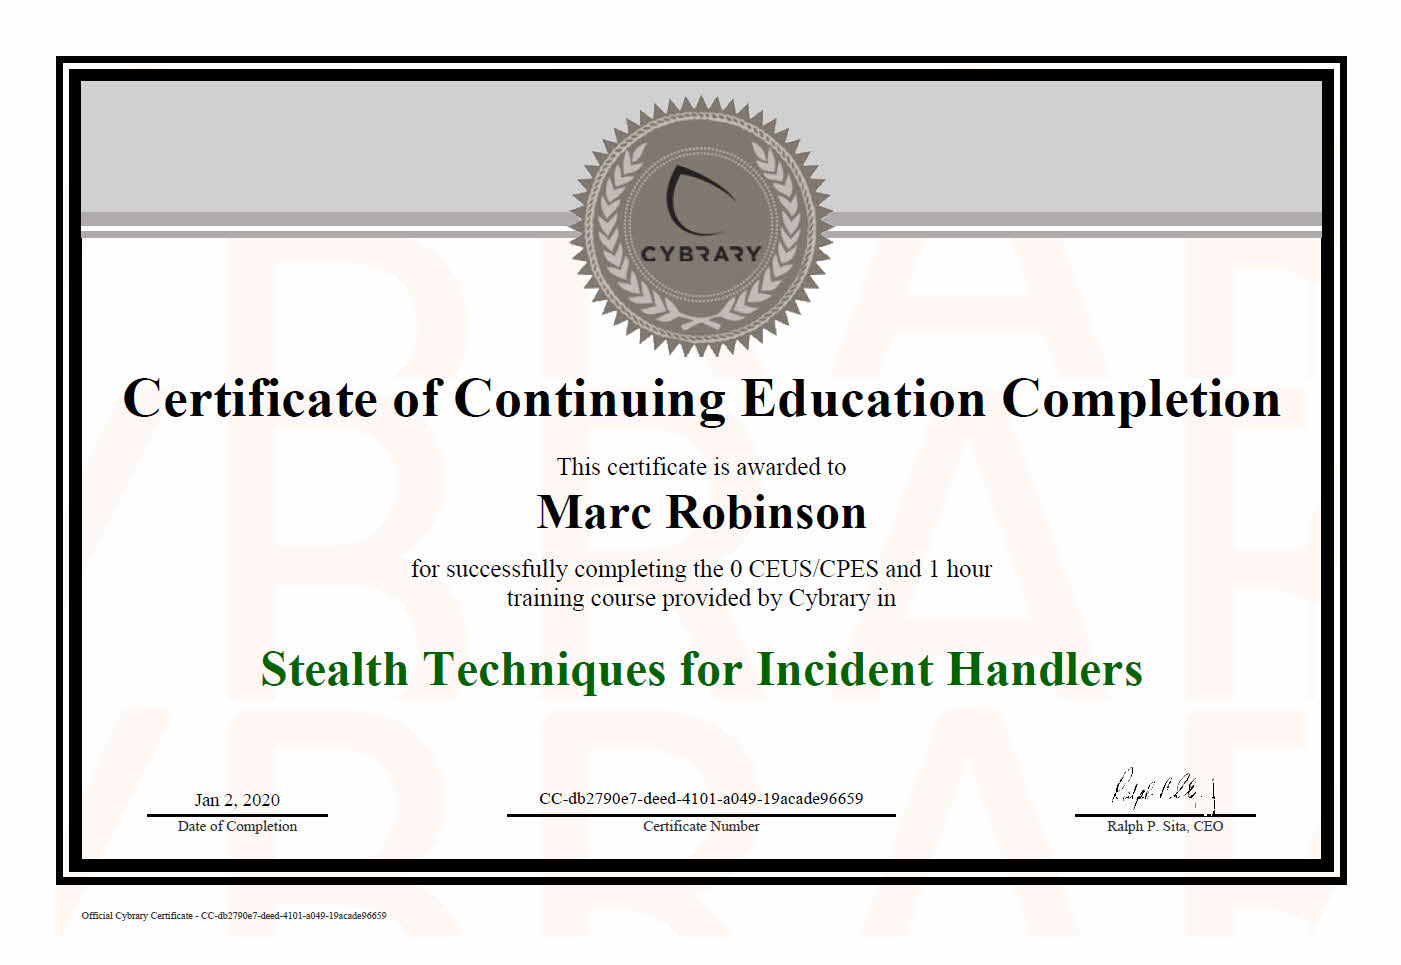 Continuing Education Course Certificate in Stealth Techniques For Incident Handlers for Marc Robinson